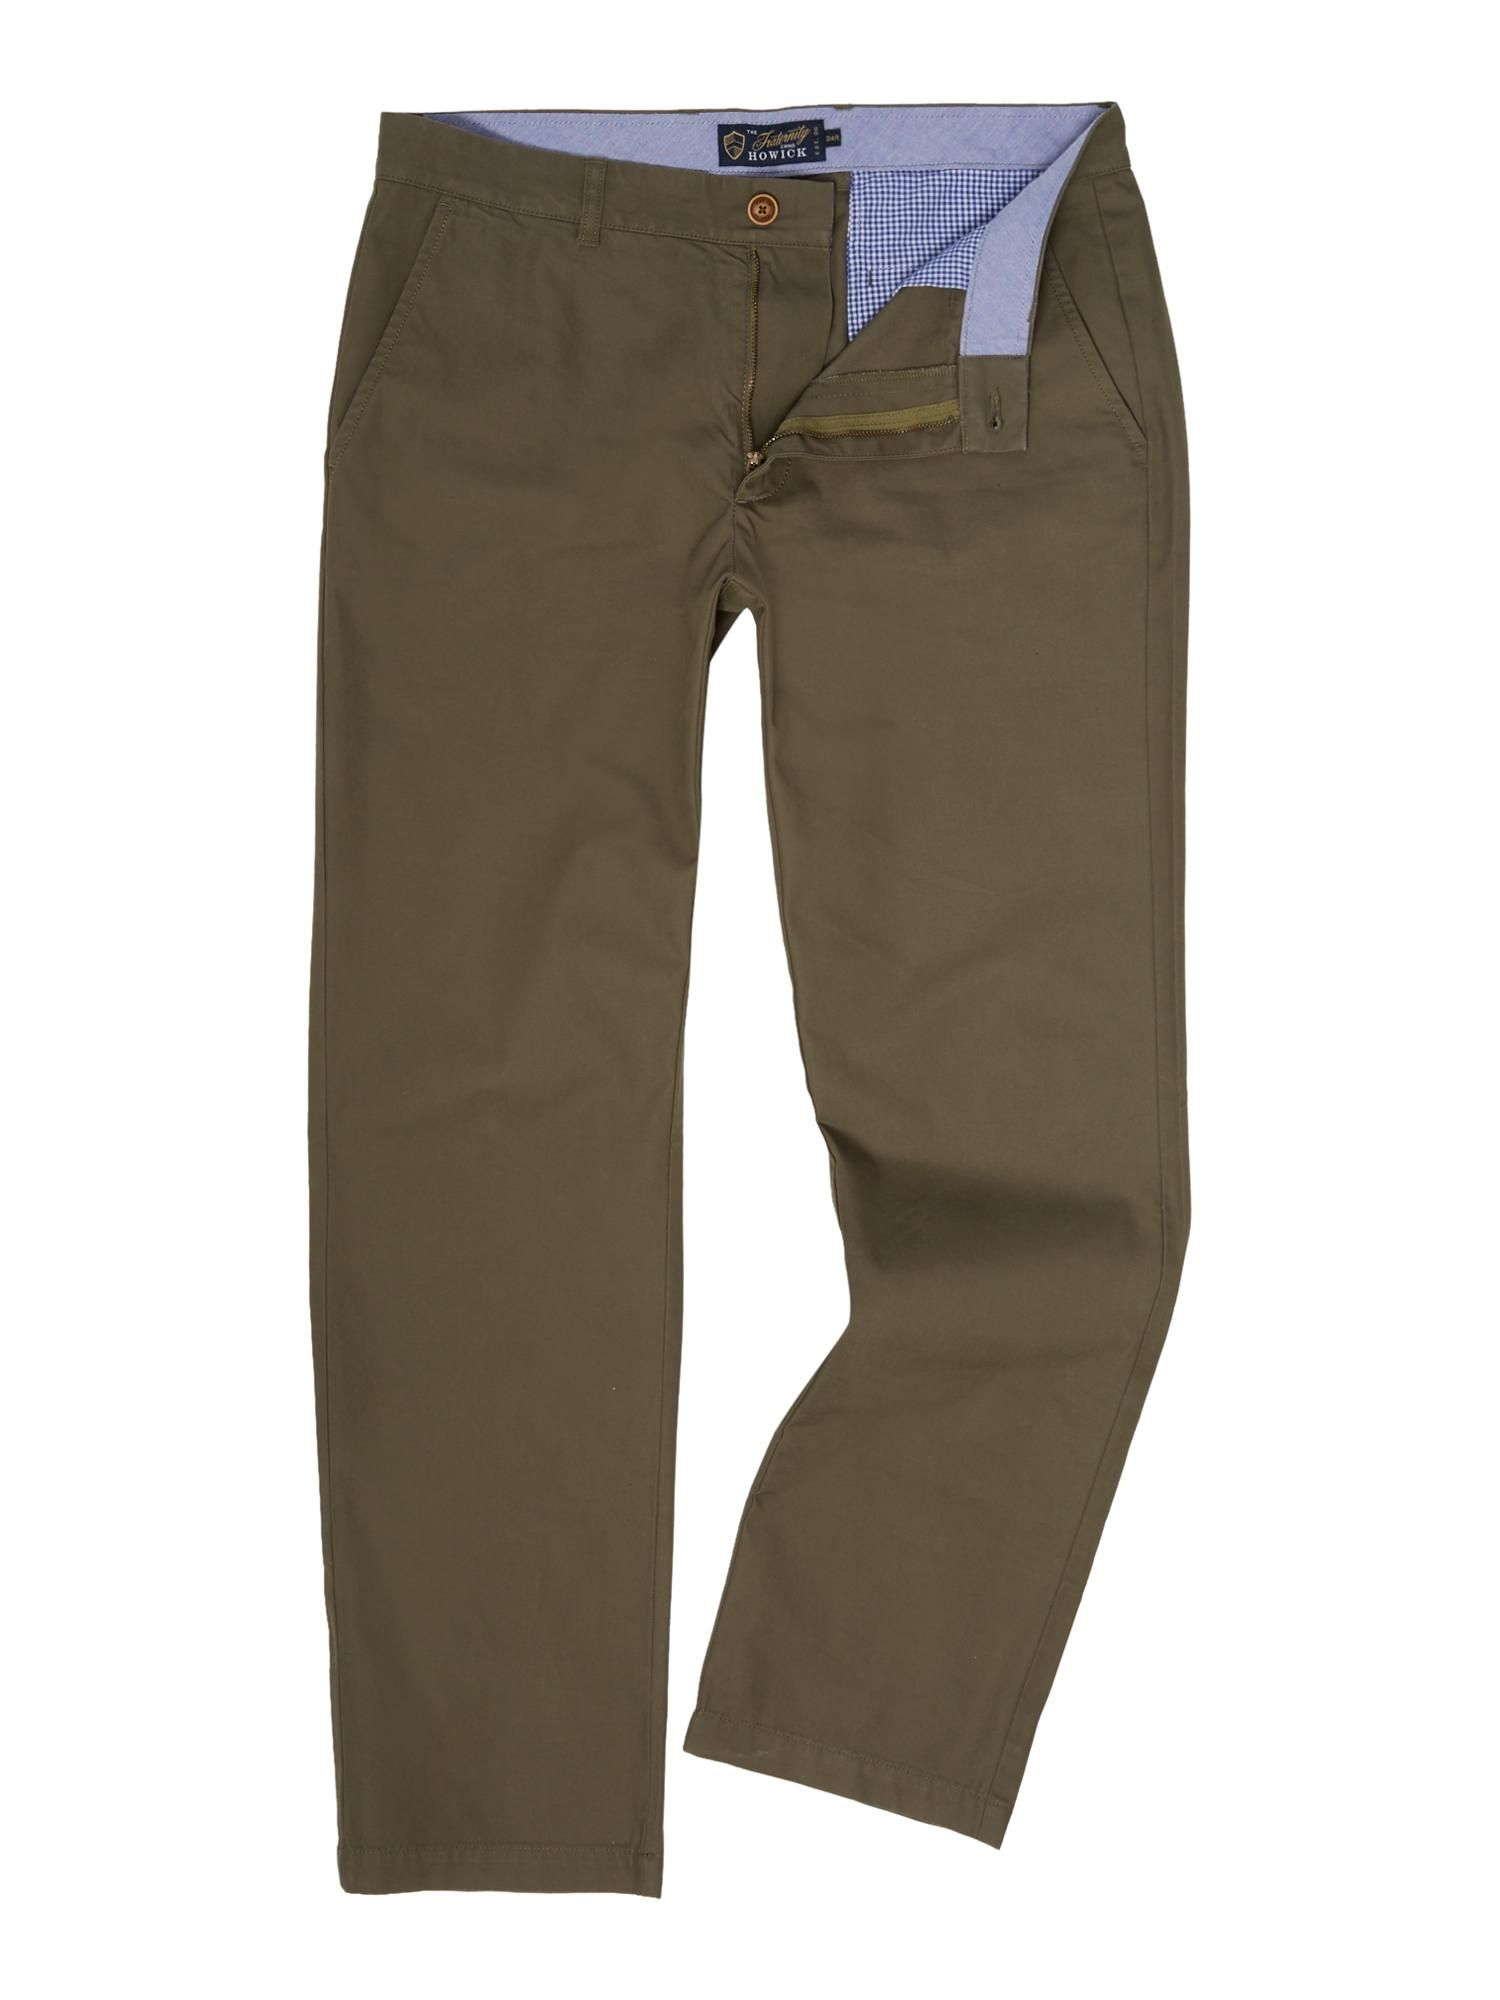 5a506c6fec Buy your Howick Fraternity Casual Chino online now at House of Fraser. Why  not Buy and Collect in-store?